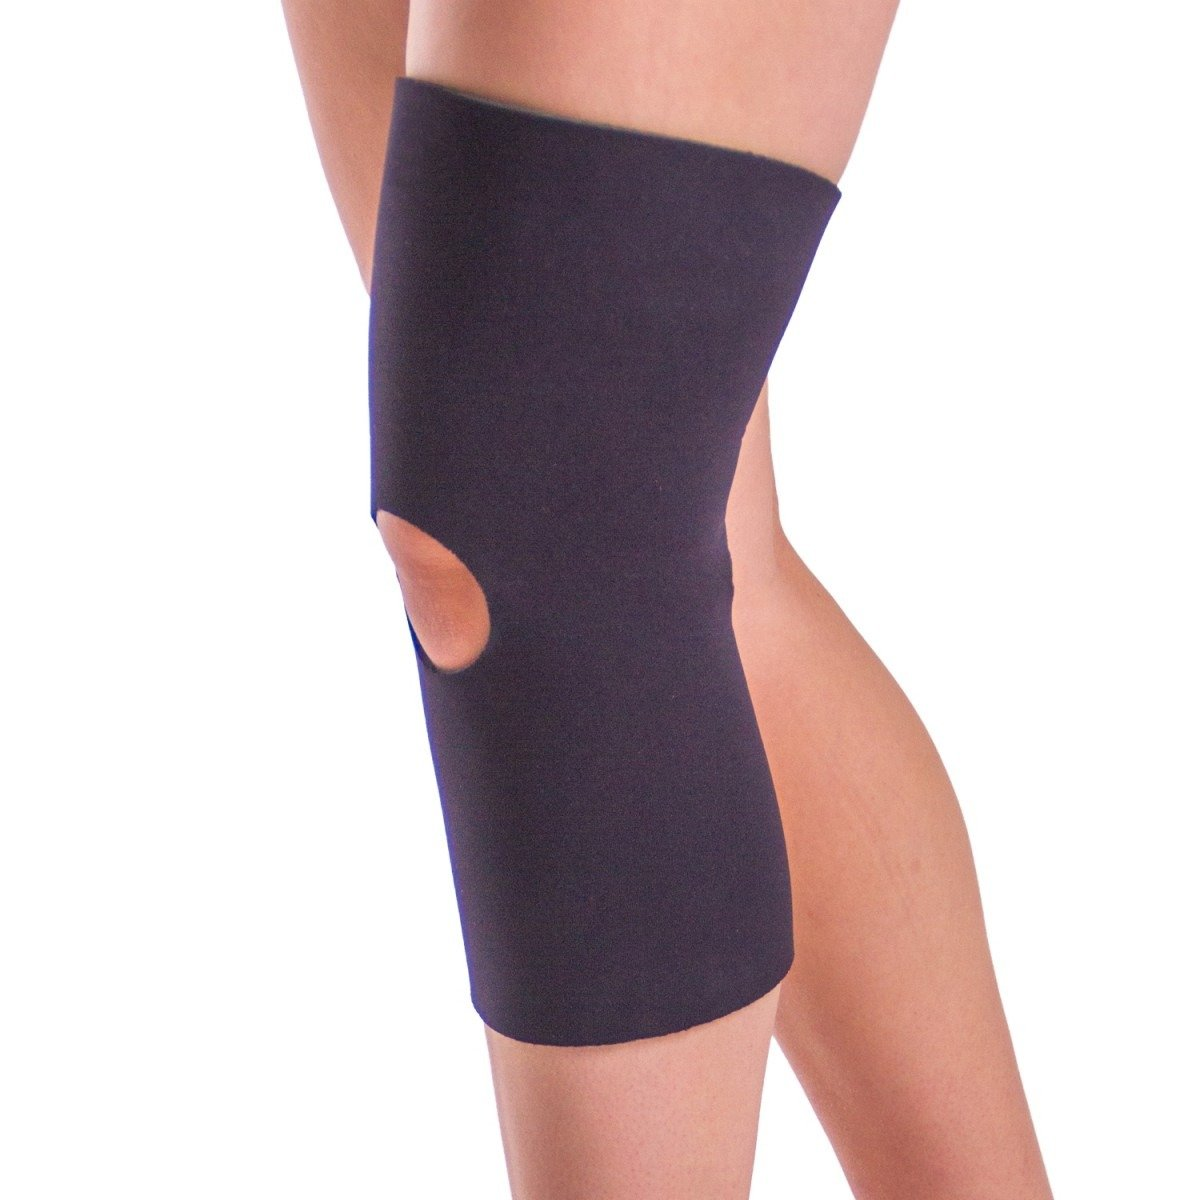 BraceAbility Open Patella/Open Back Neoprene Knee Sleeve | Water-Resistant Athletic Compression Knee Brace for Swimming, Wakeboarding, Scuba Diving, Surfing, Waterskiing and Other Sports (Medium) by BraceAbility